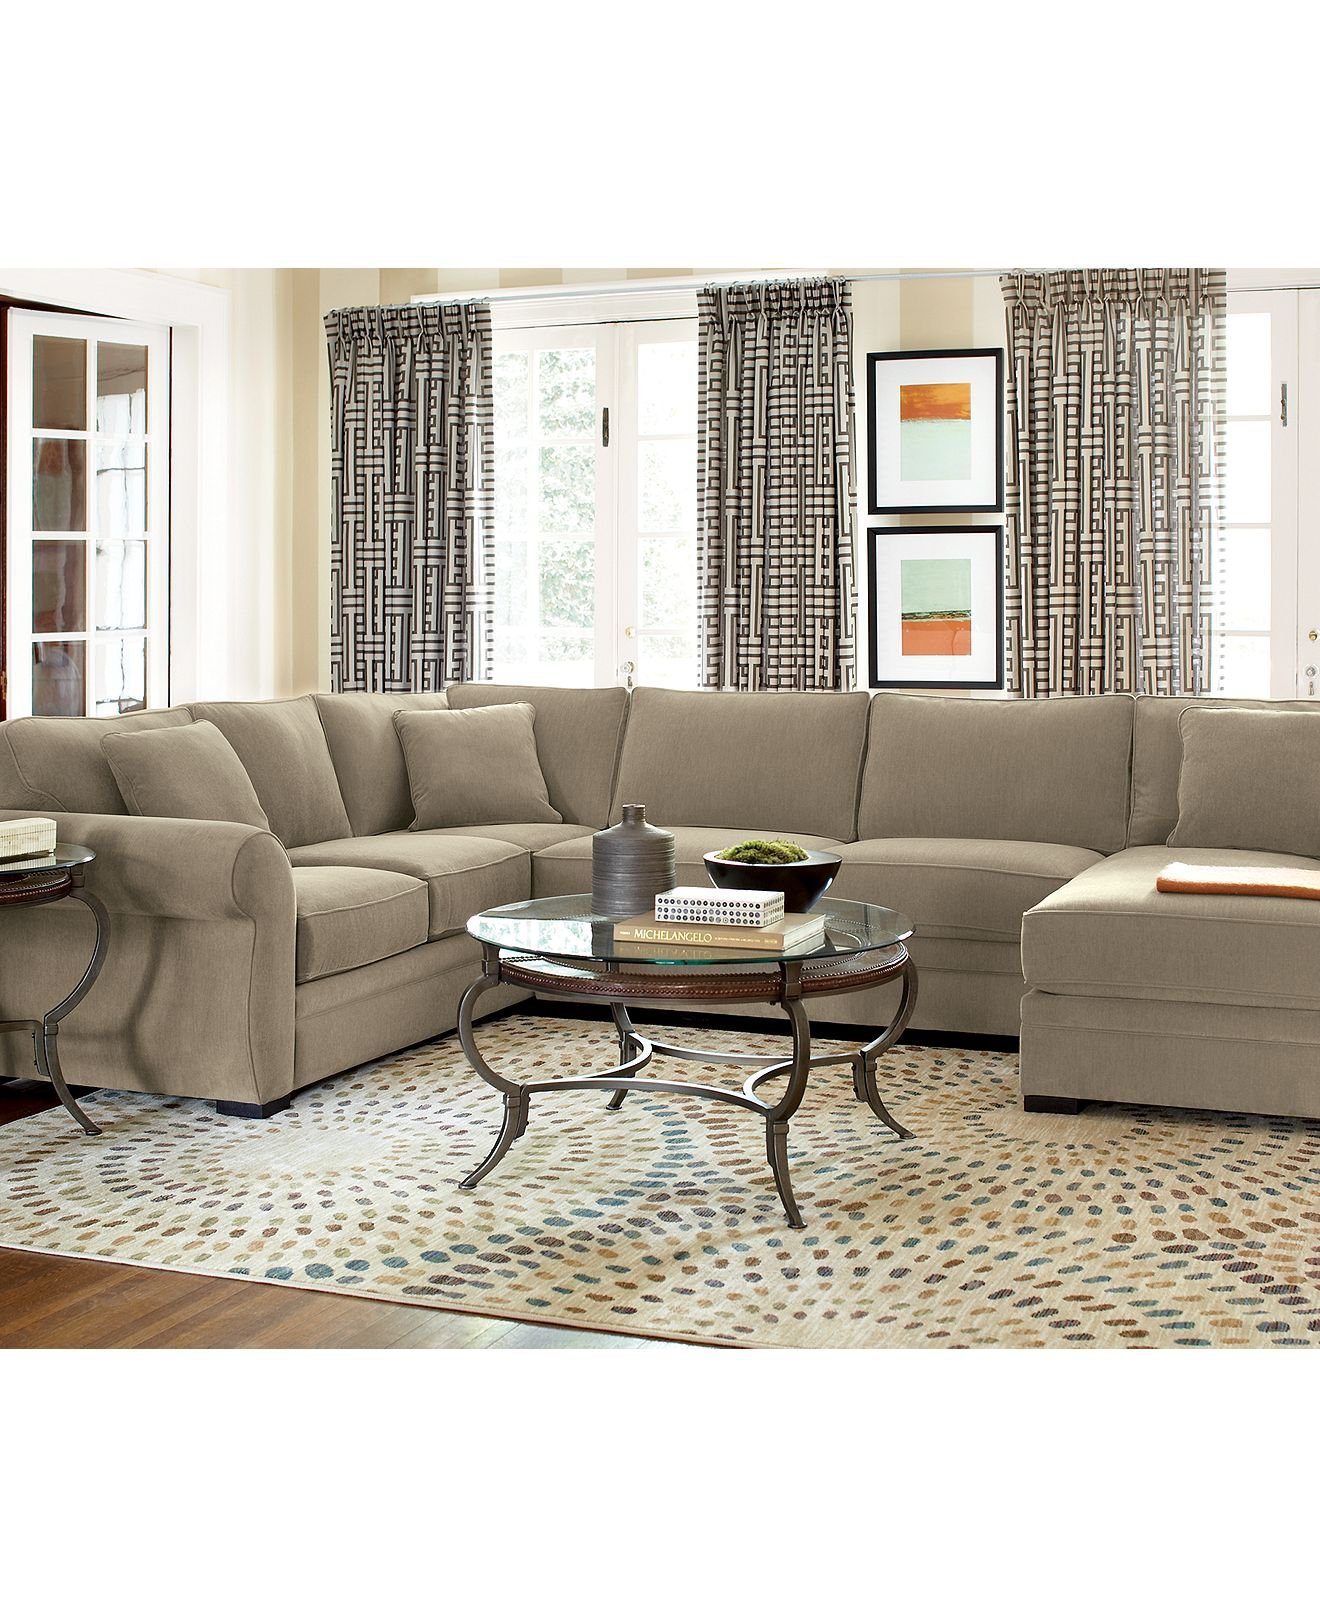 Devon living room furniture sets from macy 39 s the house - Living room sofa sets decoration ...